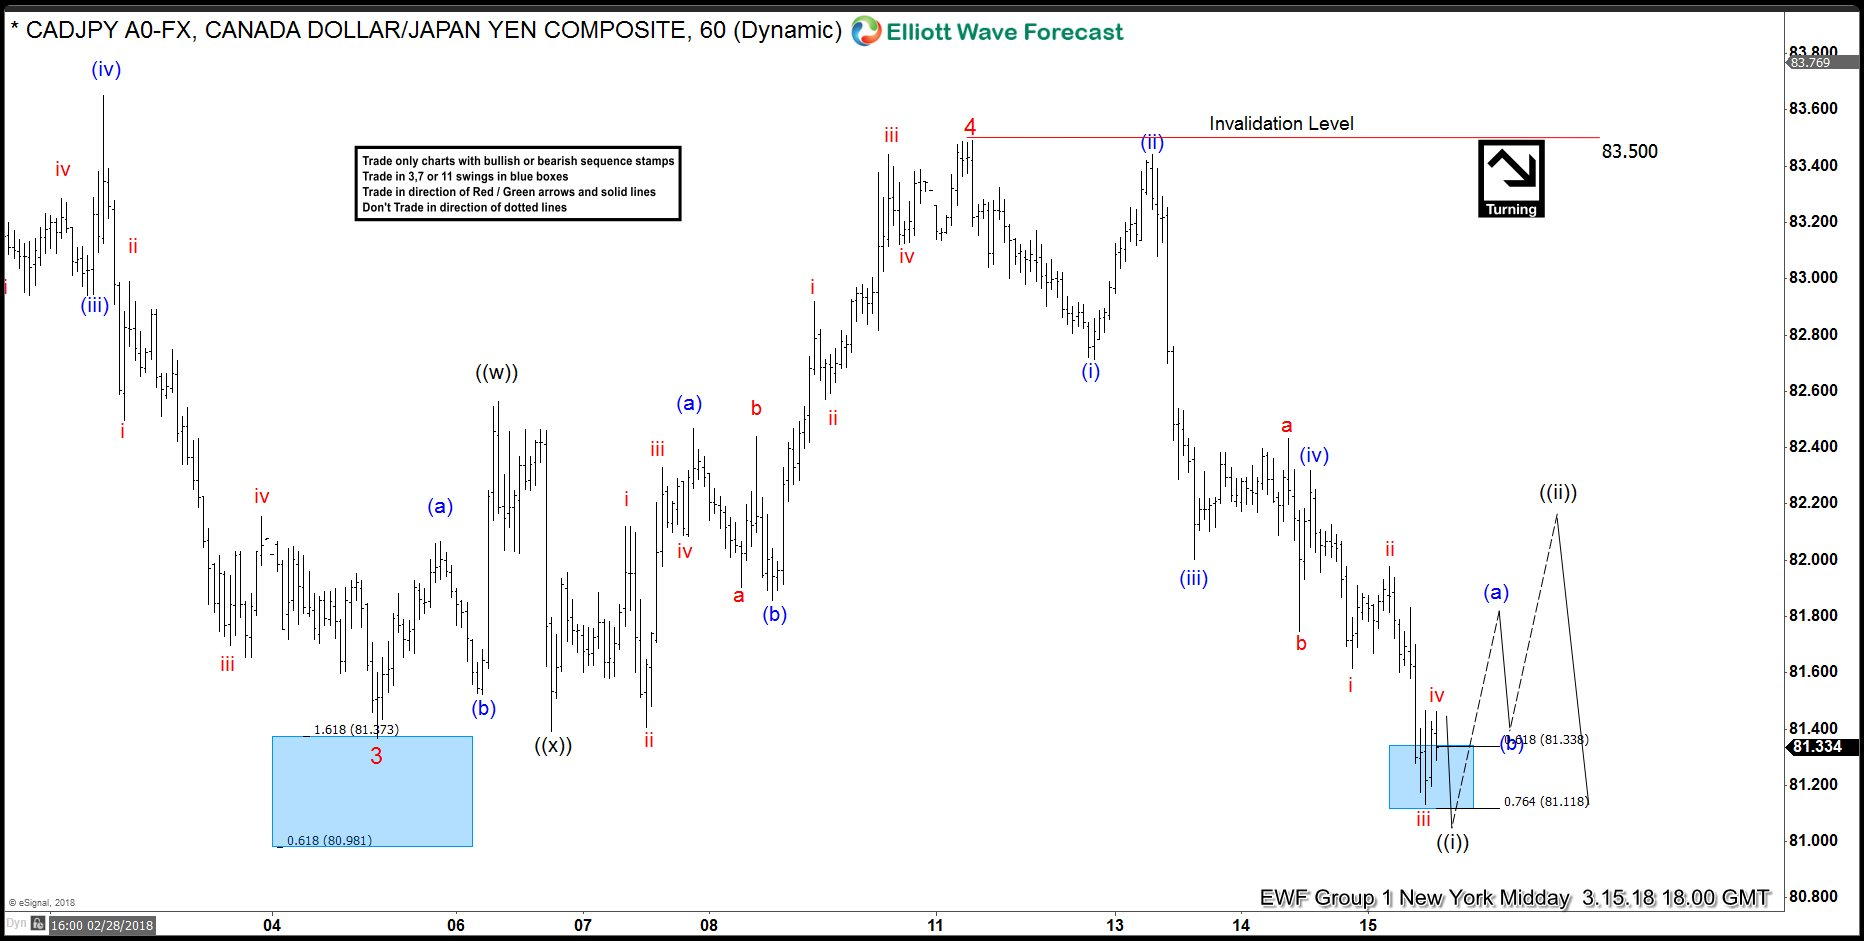 CADJPY Elliott Wave View 3.15.2018